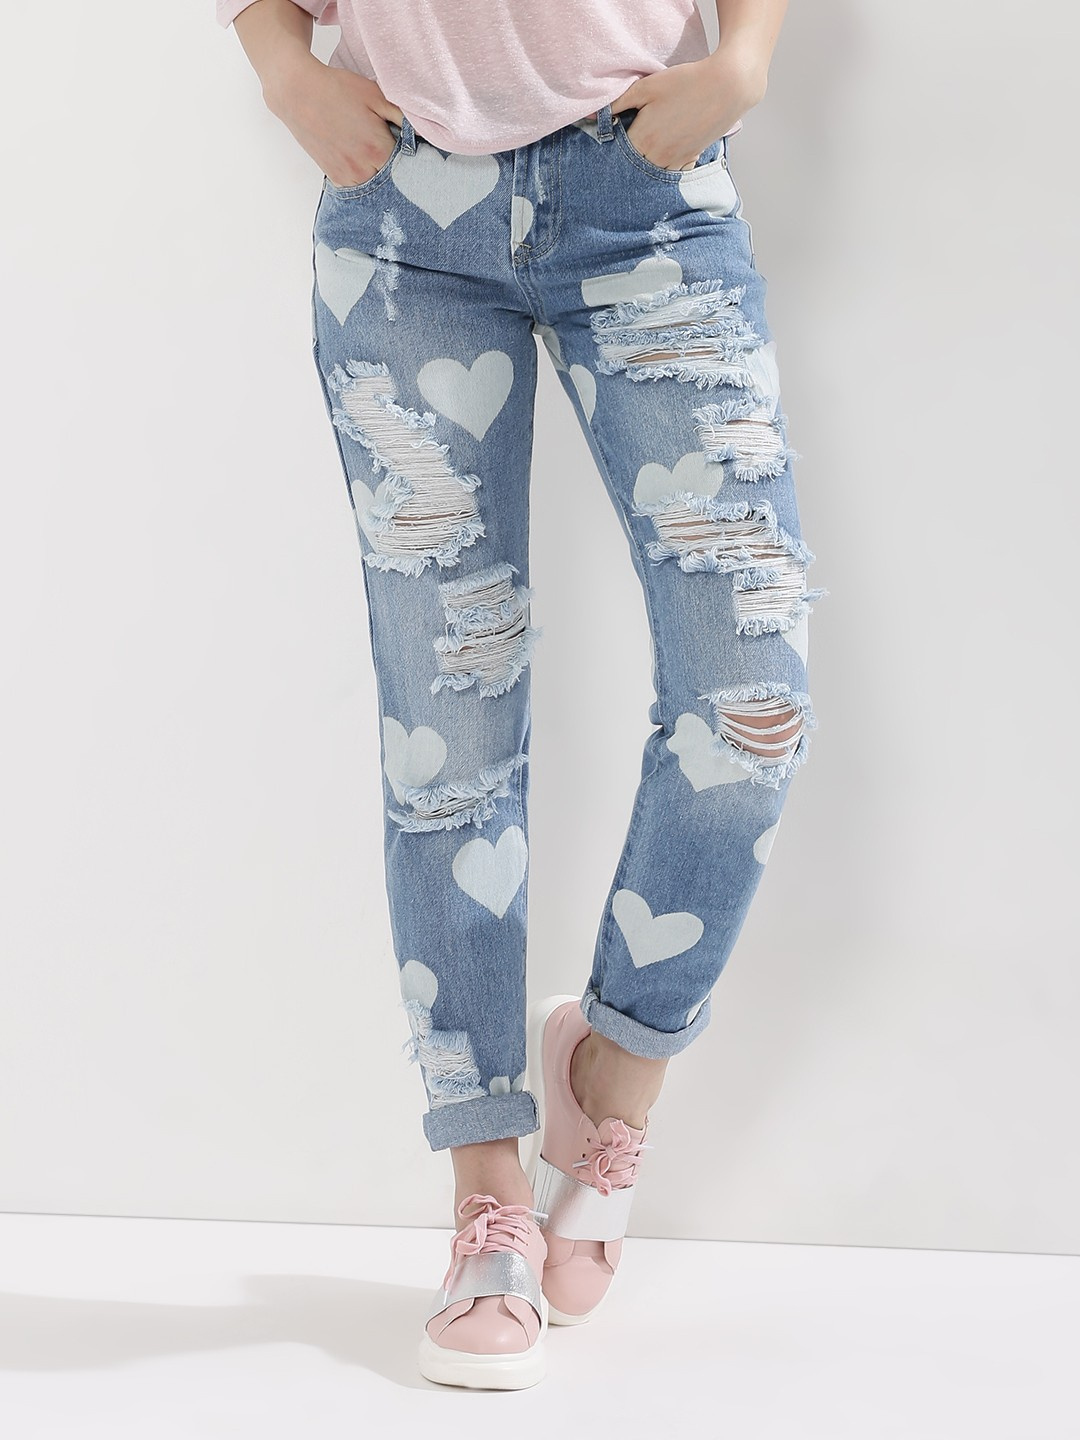 Buy GLAMOROUS Heart Print Distressed Jeans For Women - Women's ...